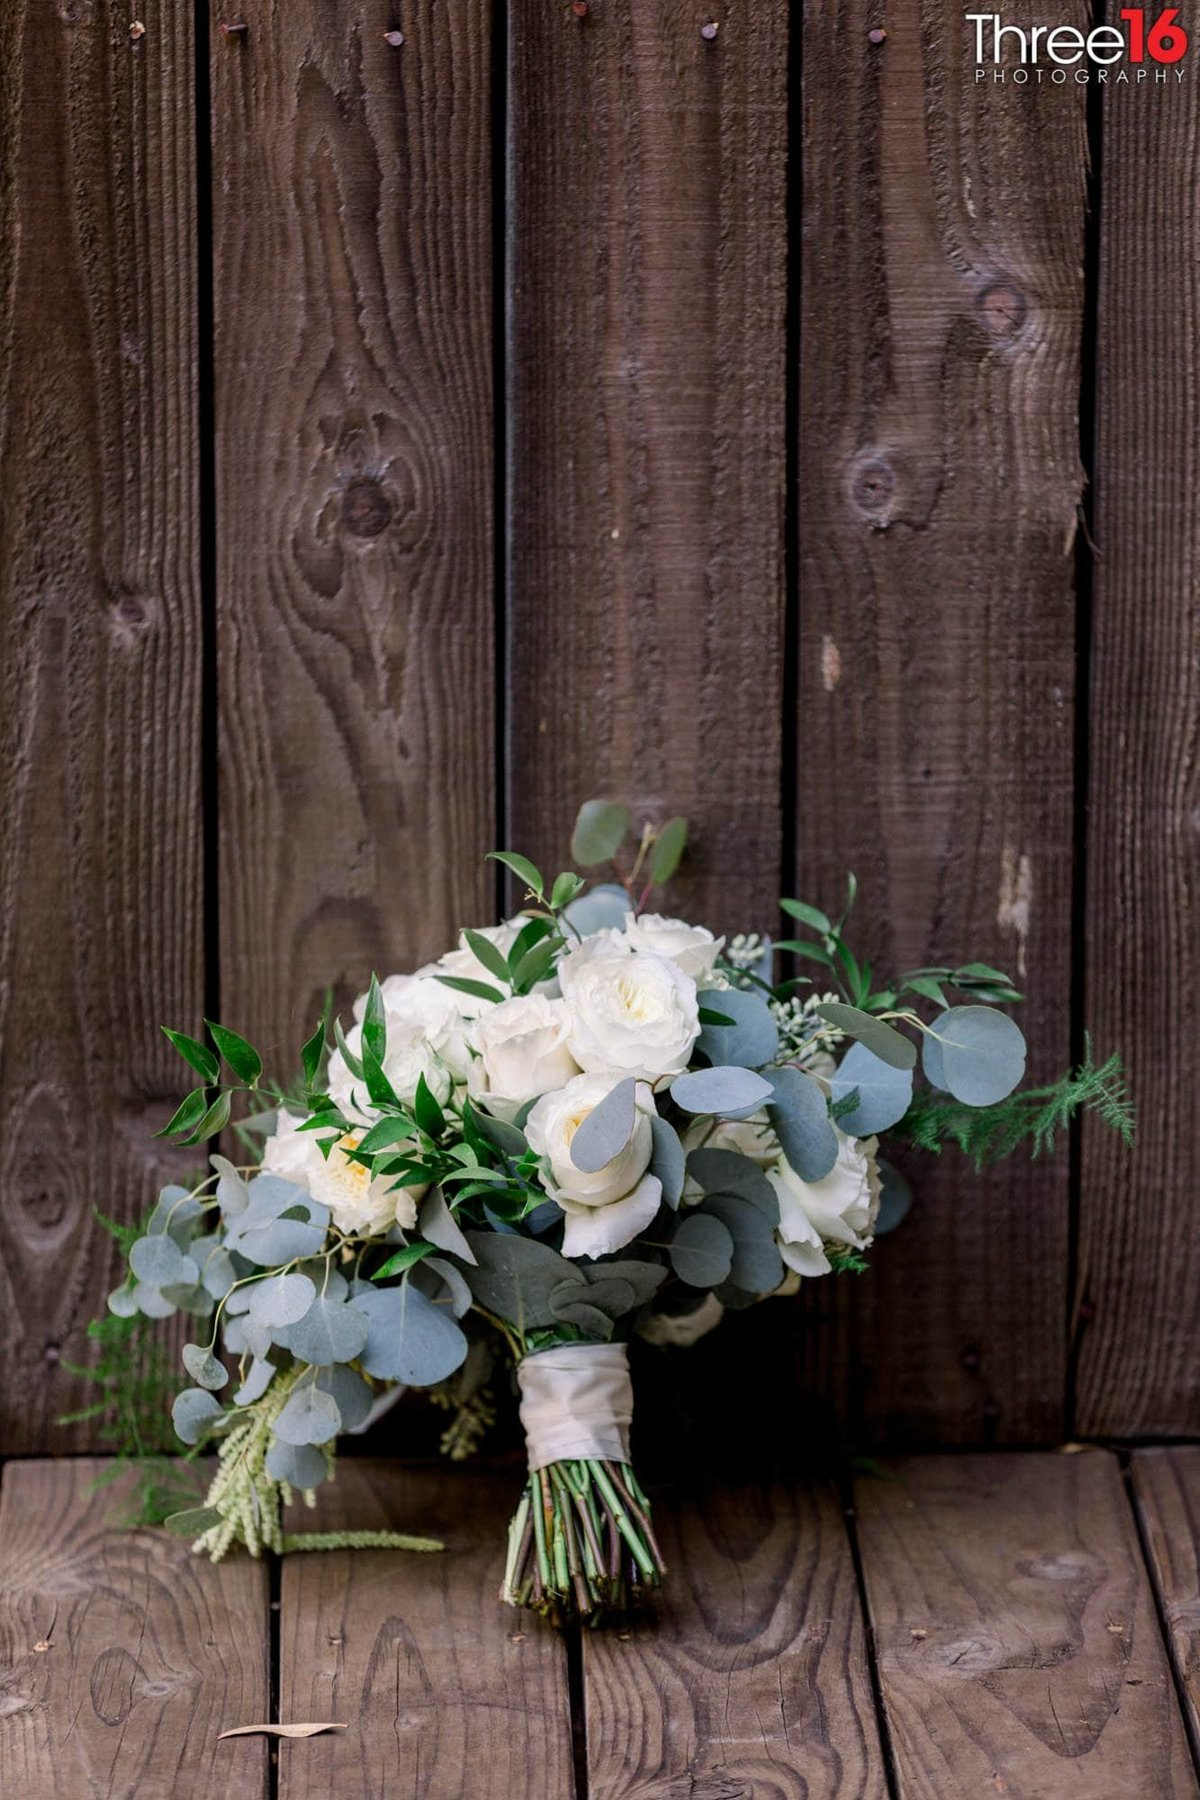 Brides bouquet resting up against a wooden fence